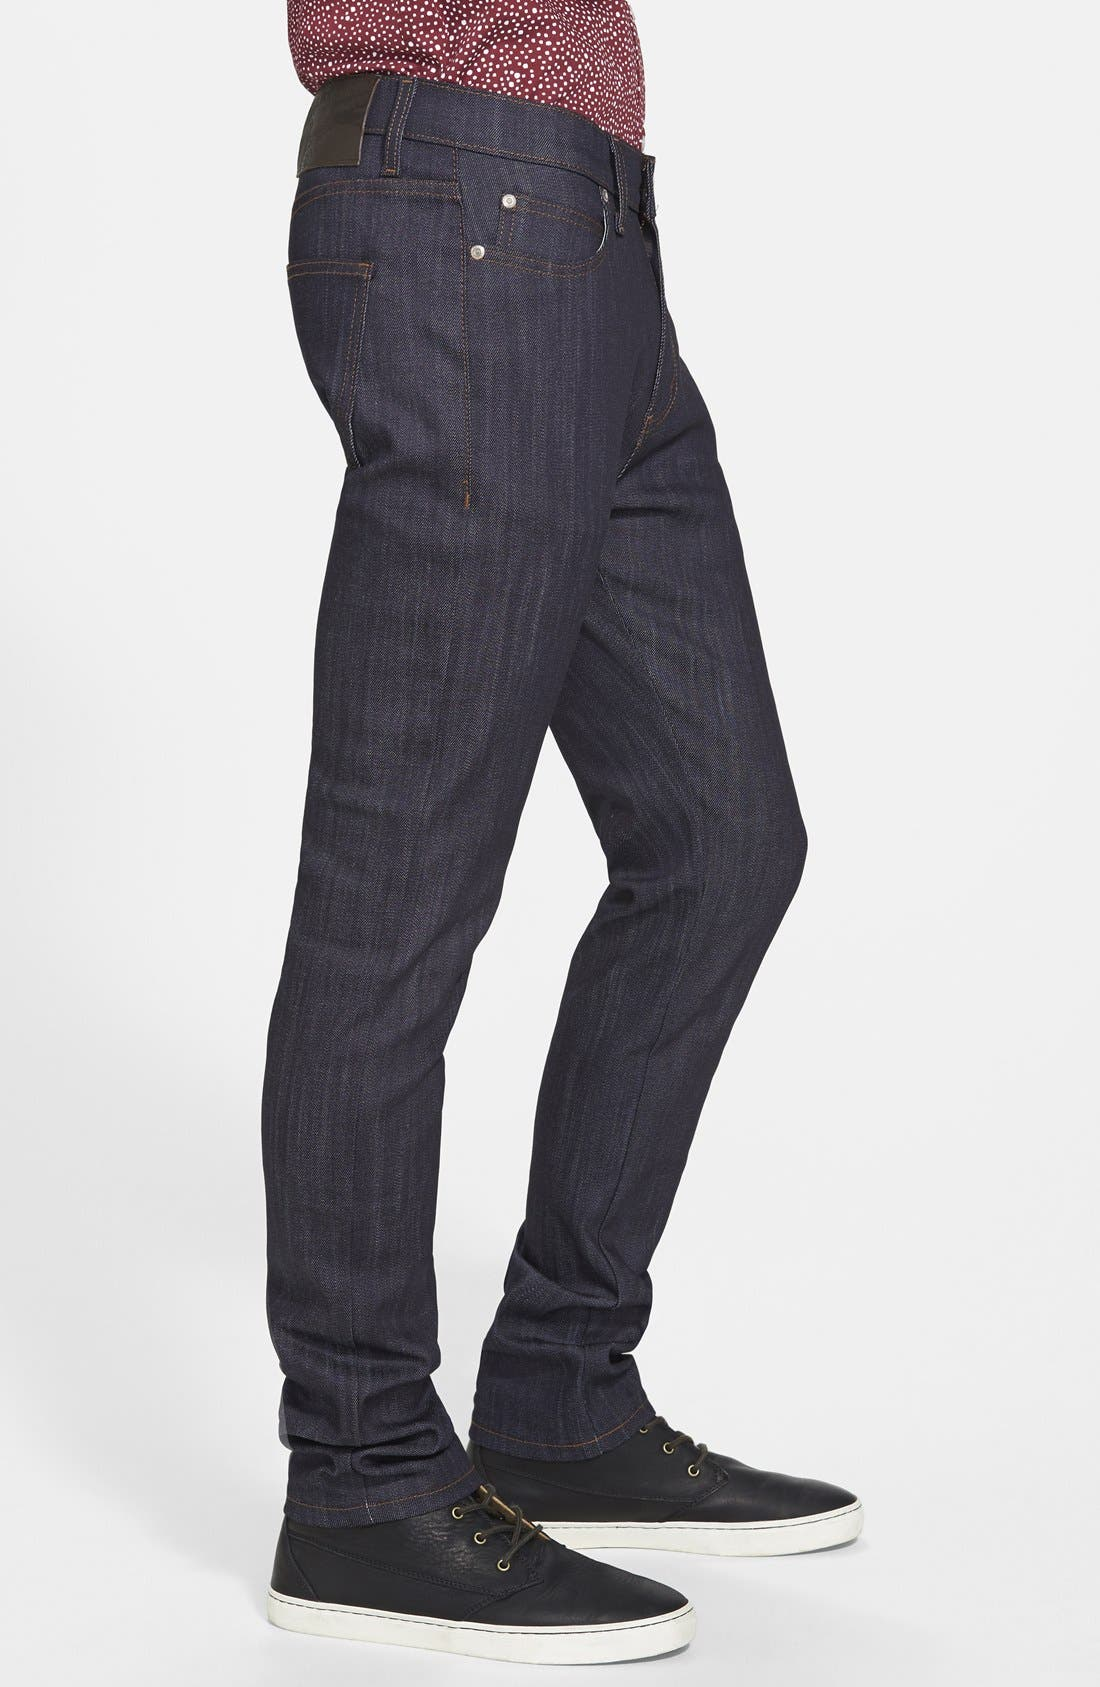 'Stacked Guy' Skinny Fit Jeans,                             Alternate thumbnail 4, color,                             401